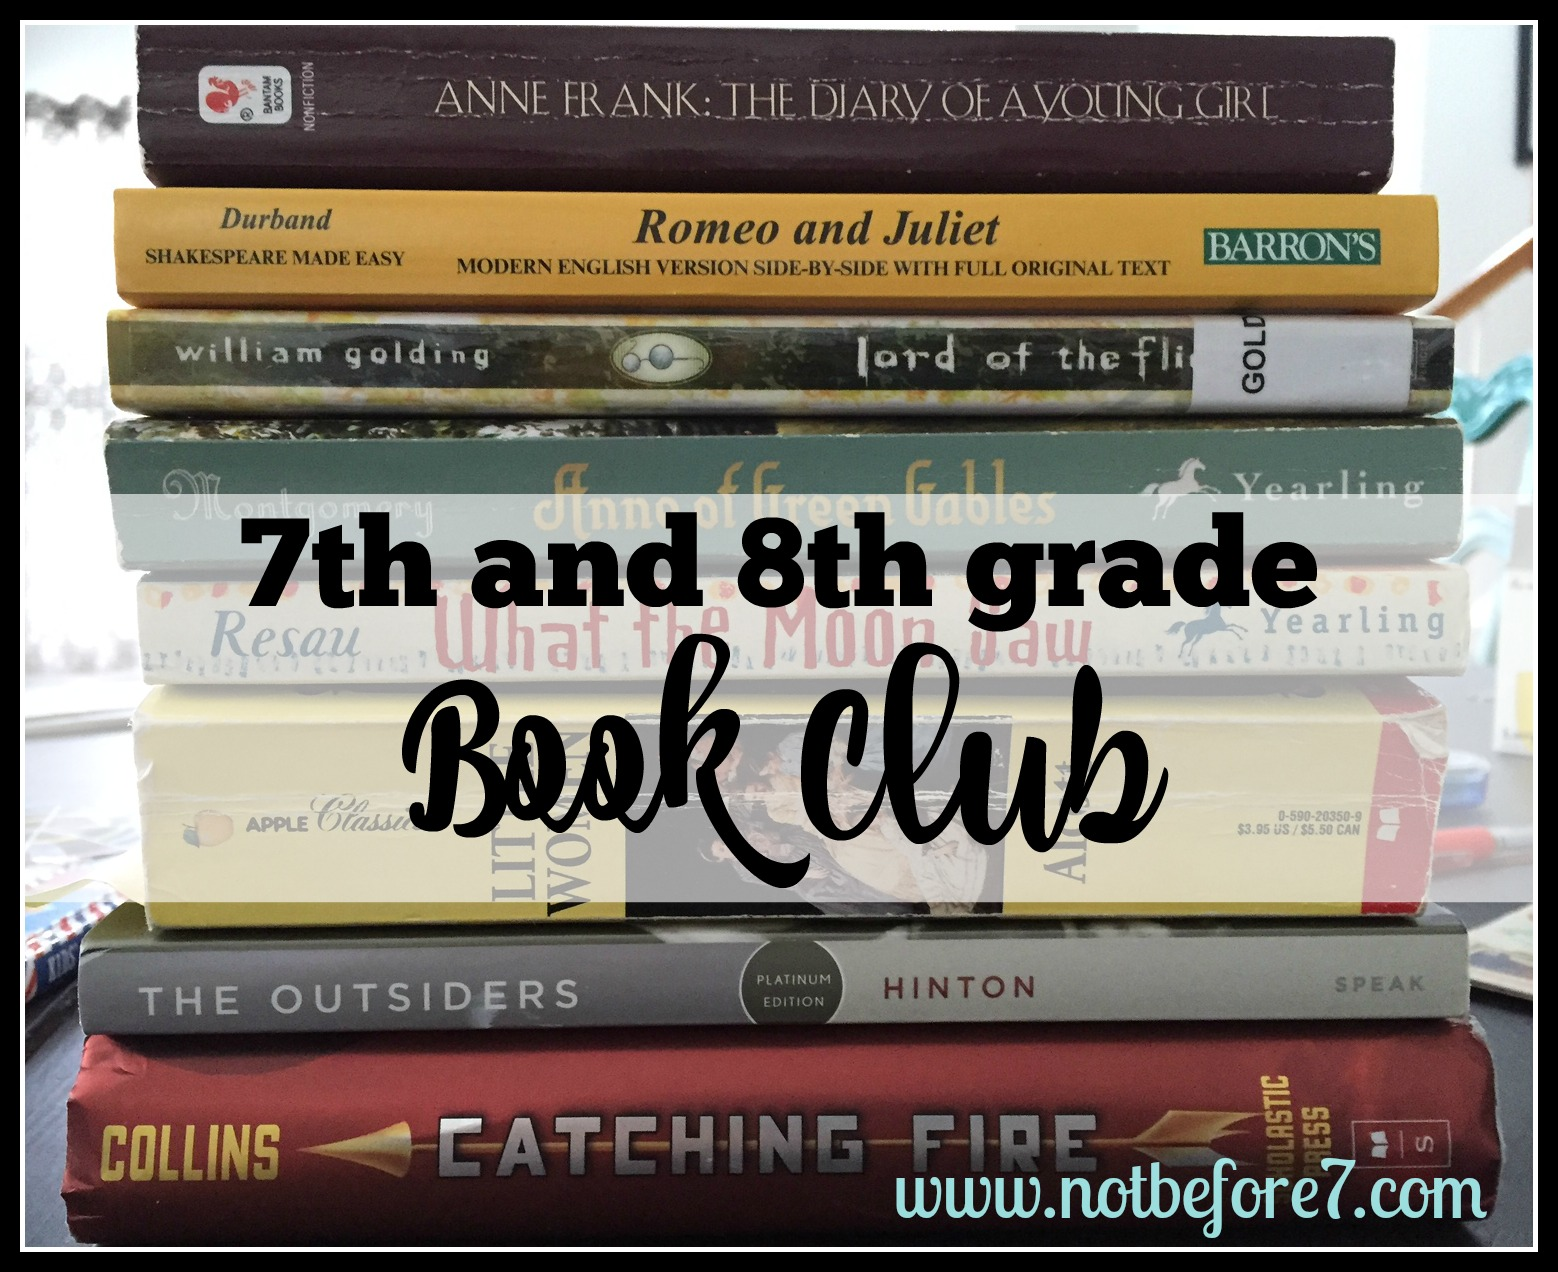 What Began As A Simple Idea To Chat About Books At Starbucks With My Oldest Daughter And Her Friends Turned Into Memorable Monthly Partyschool Experience